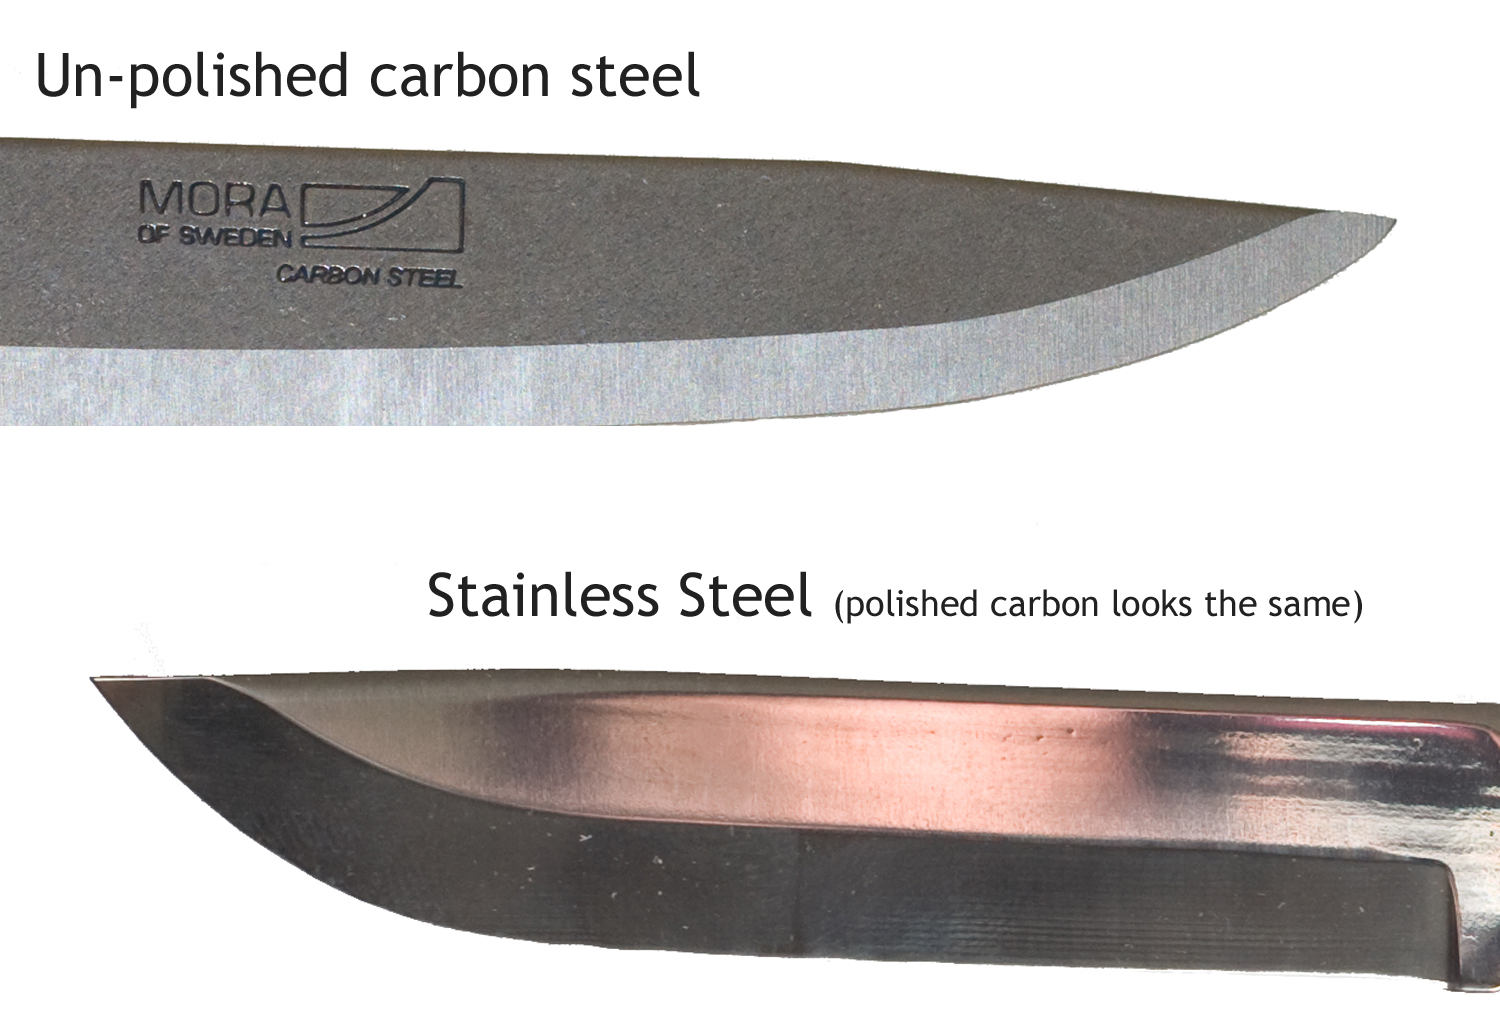 Carbon & Stainless Steel Differences